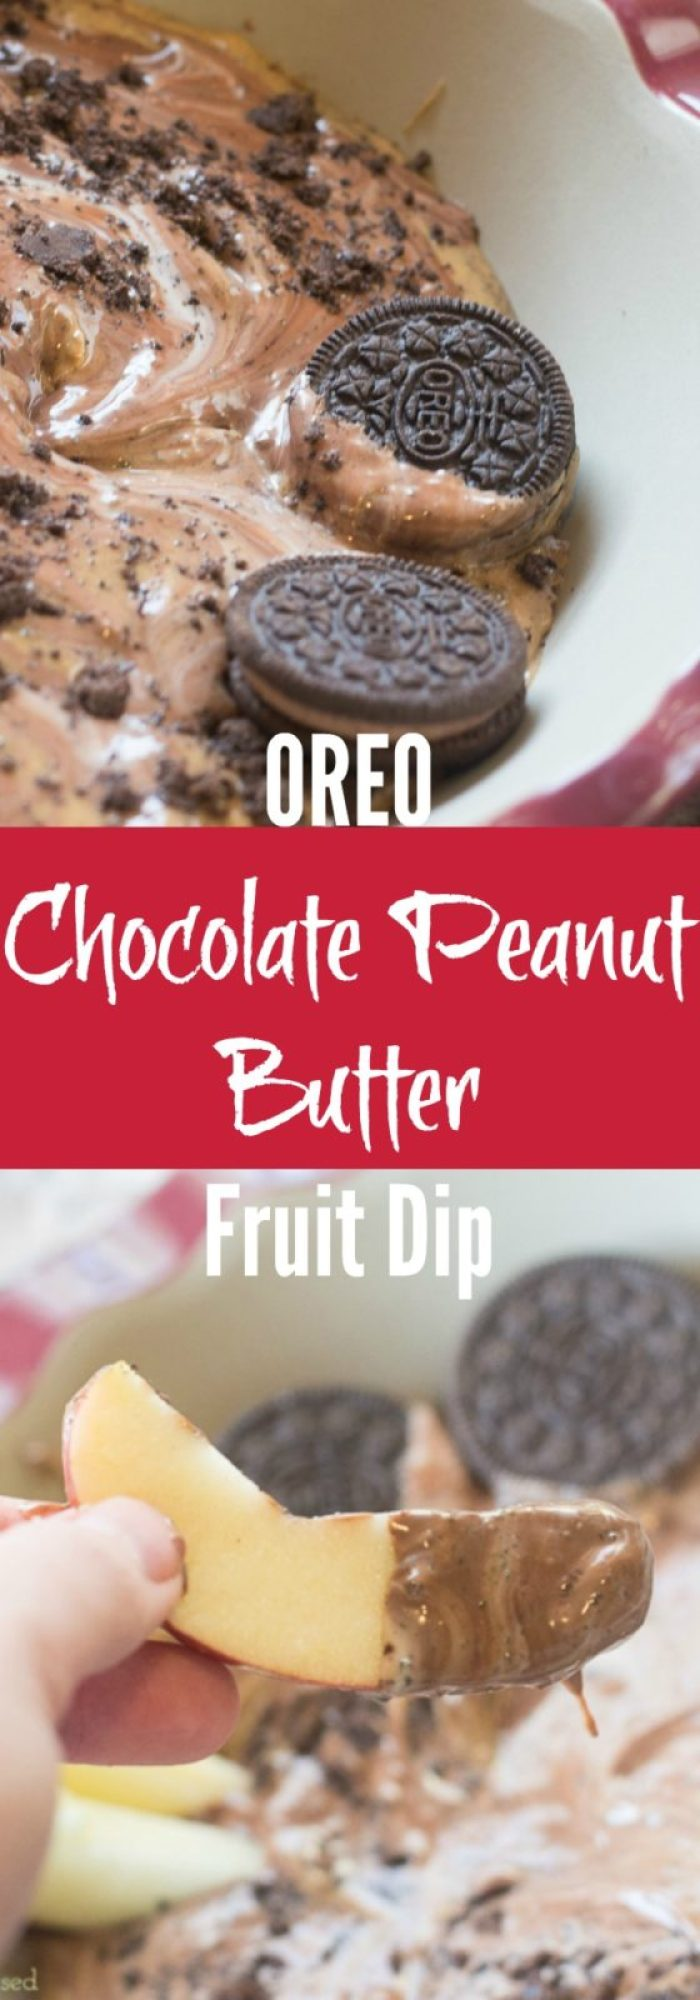 This is the only fruit dip recipe you need - it's creamy, it's chocolate-y, and it's sure to be a hit! OREO Chocolate Peanut butter fruit dip